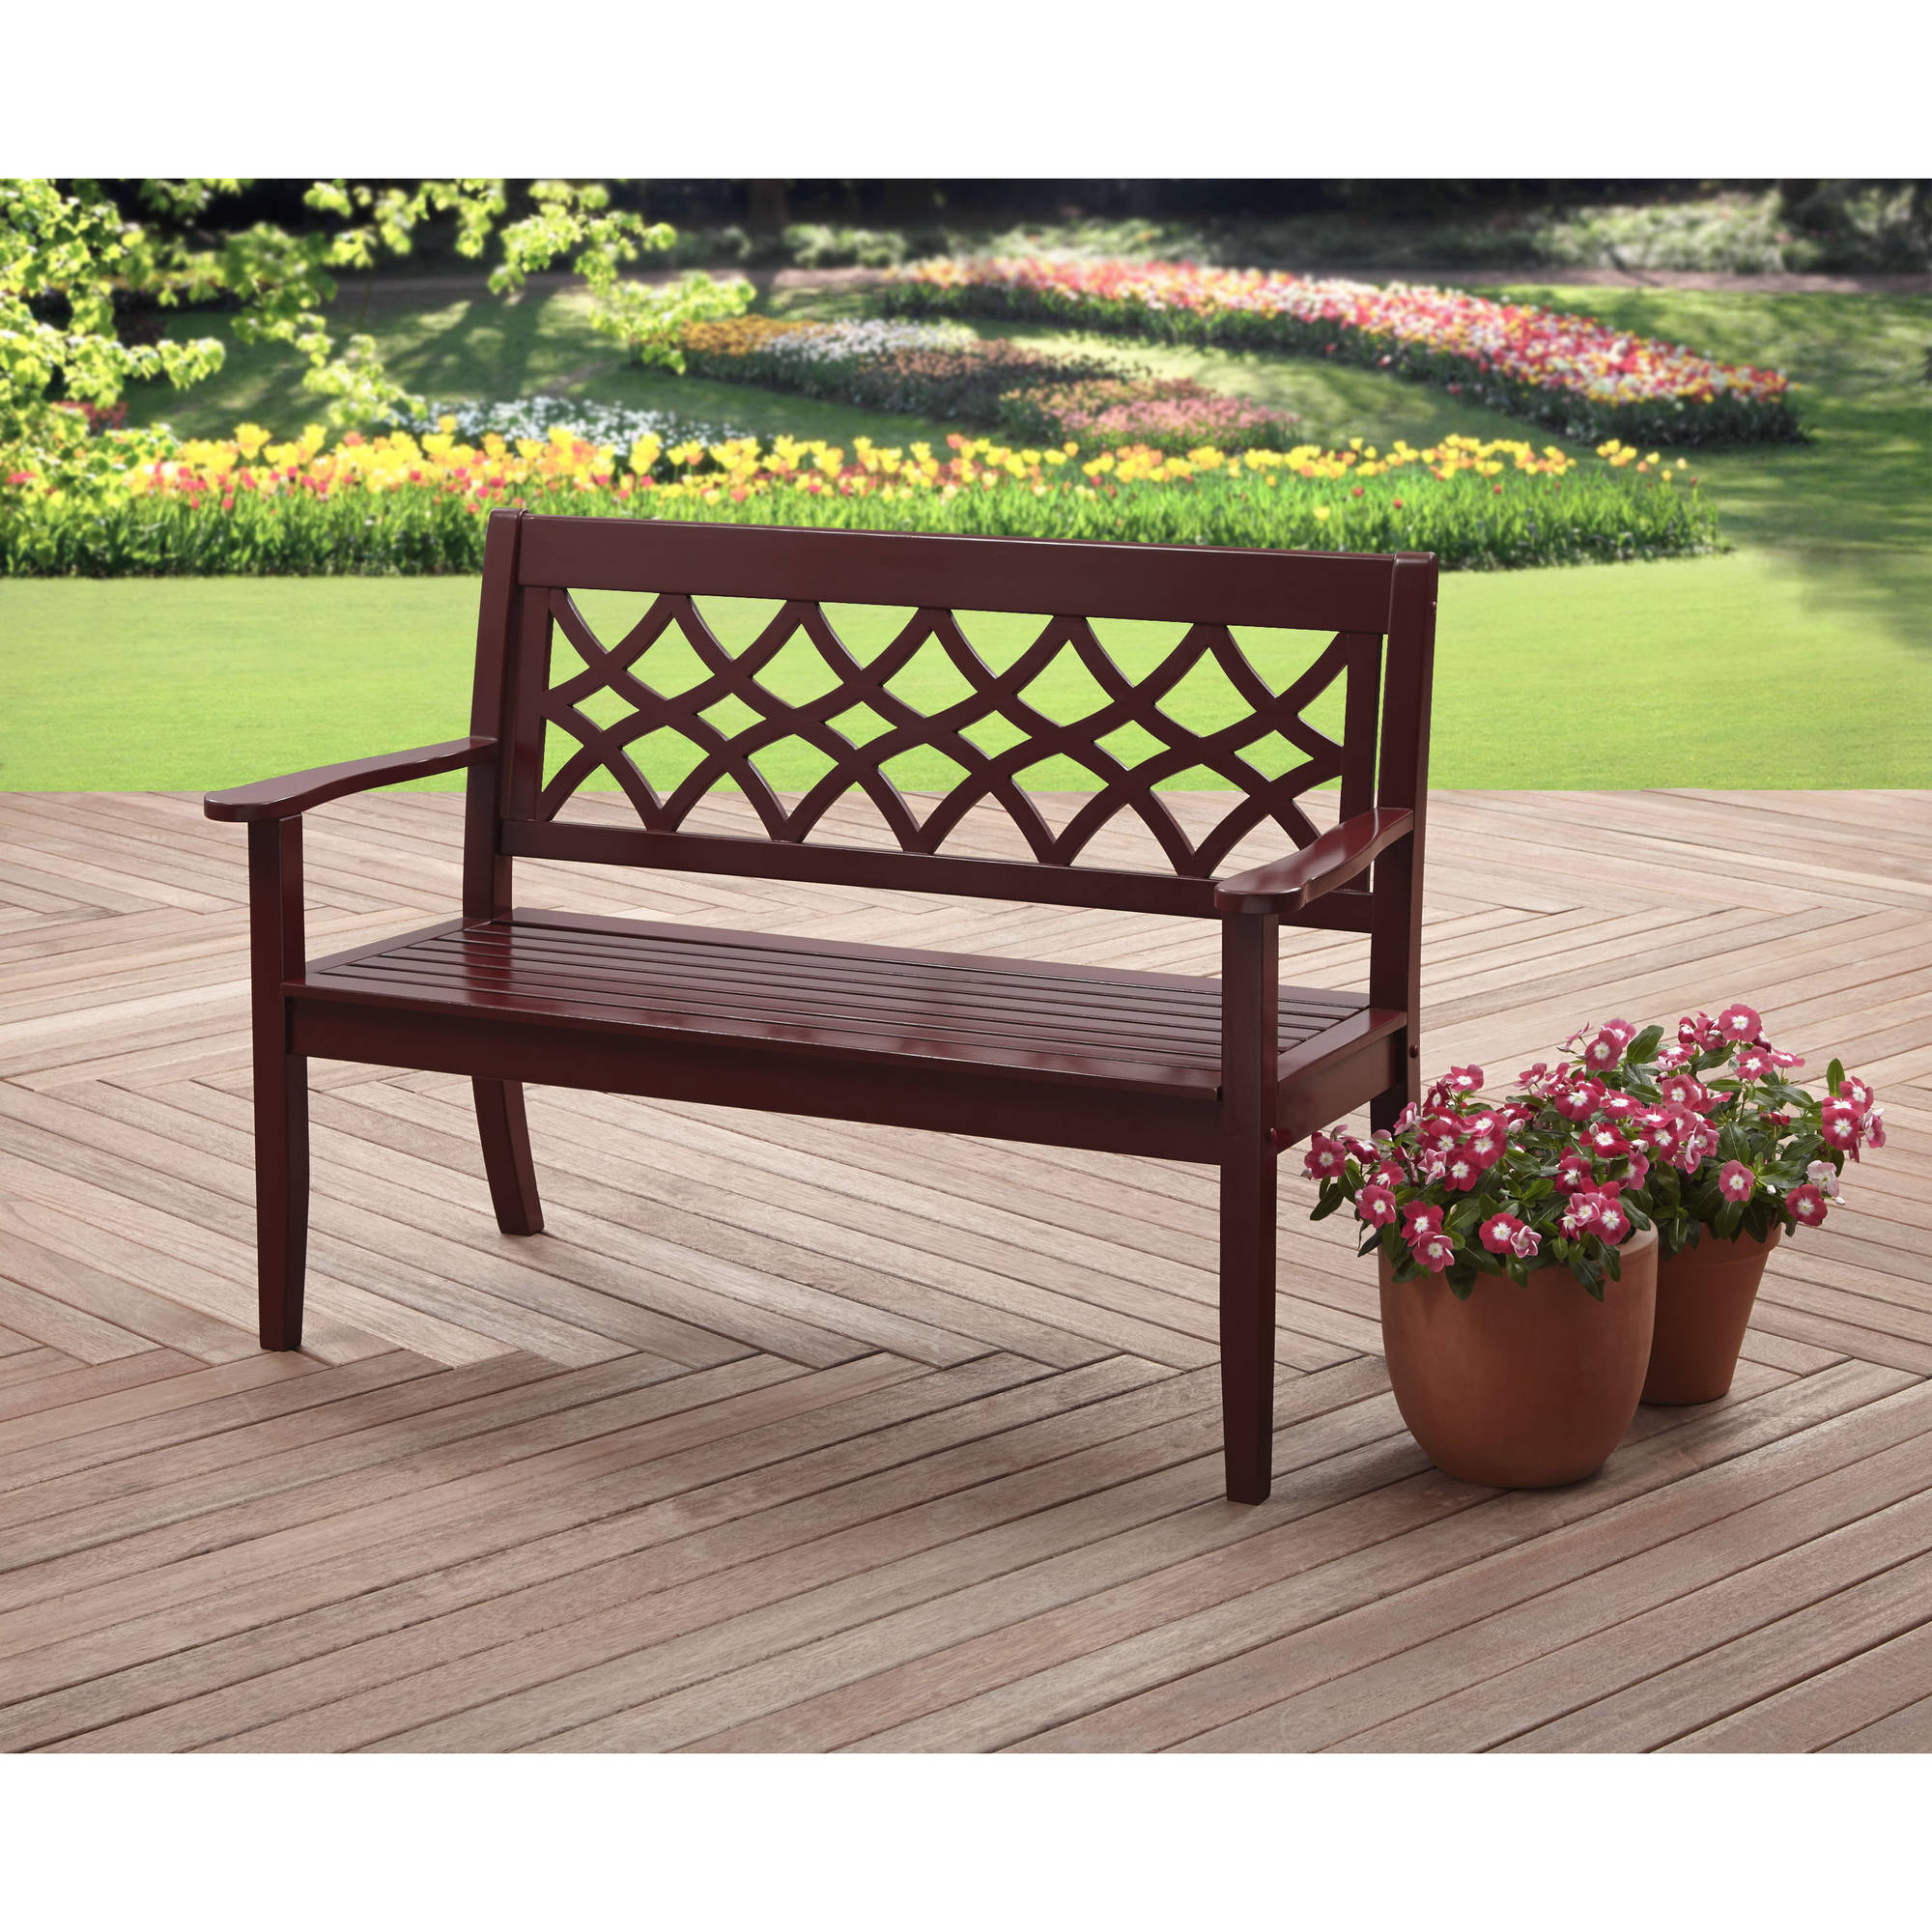 patio furniture walmartcom - Garden Furniture Table And Chairs